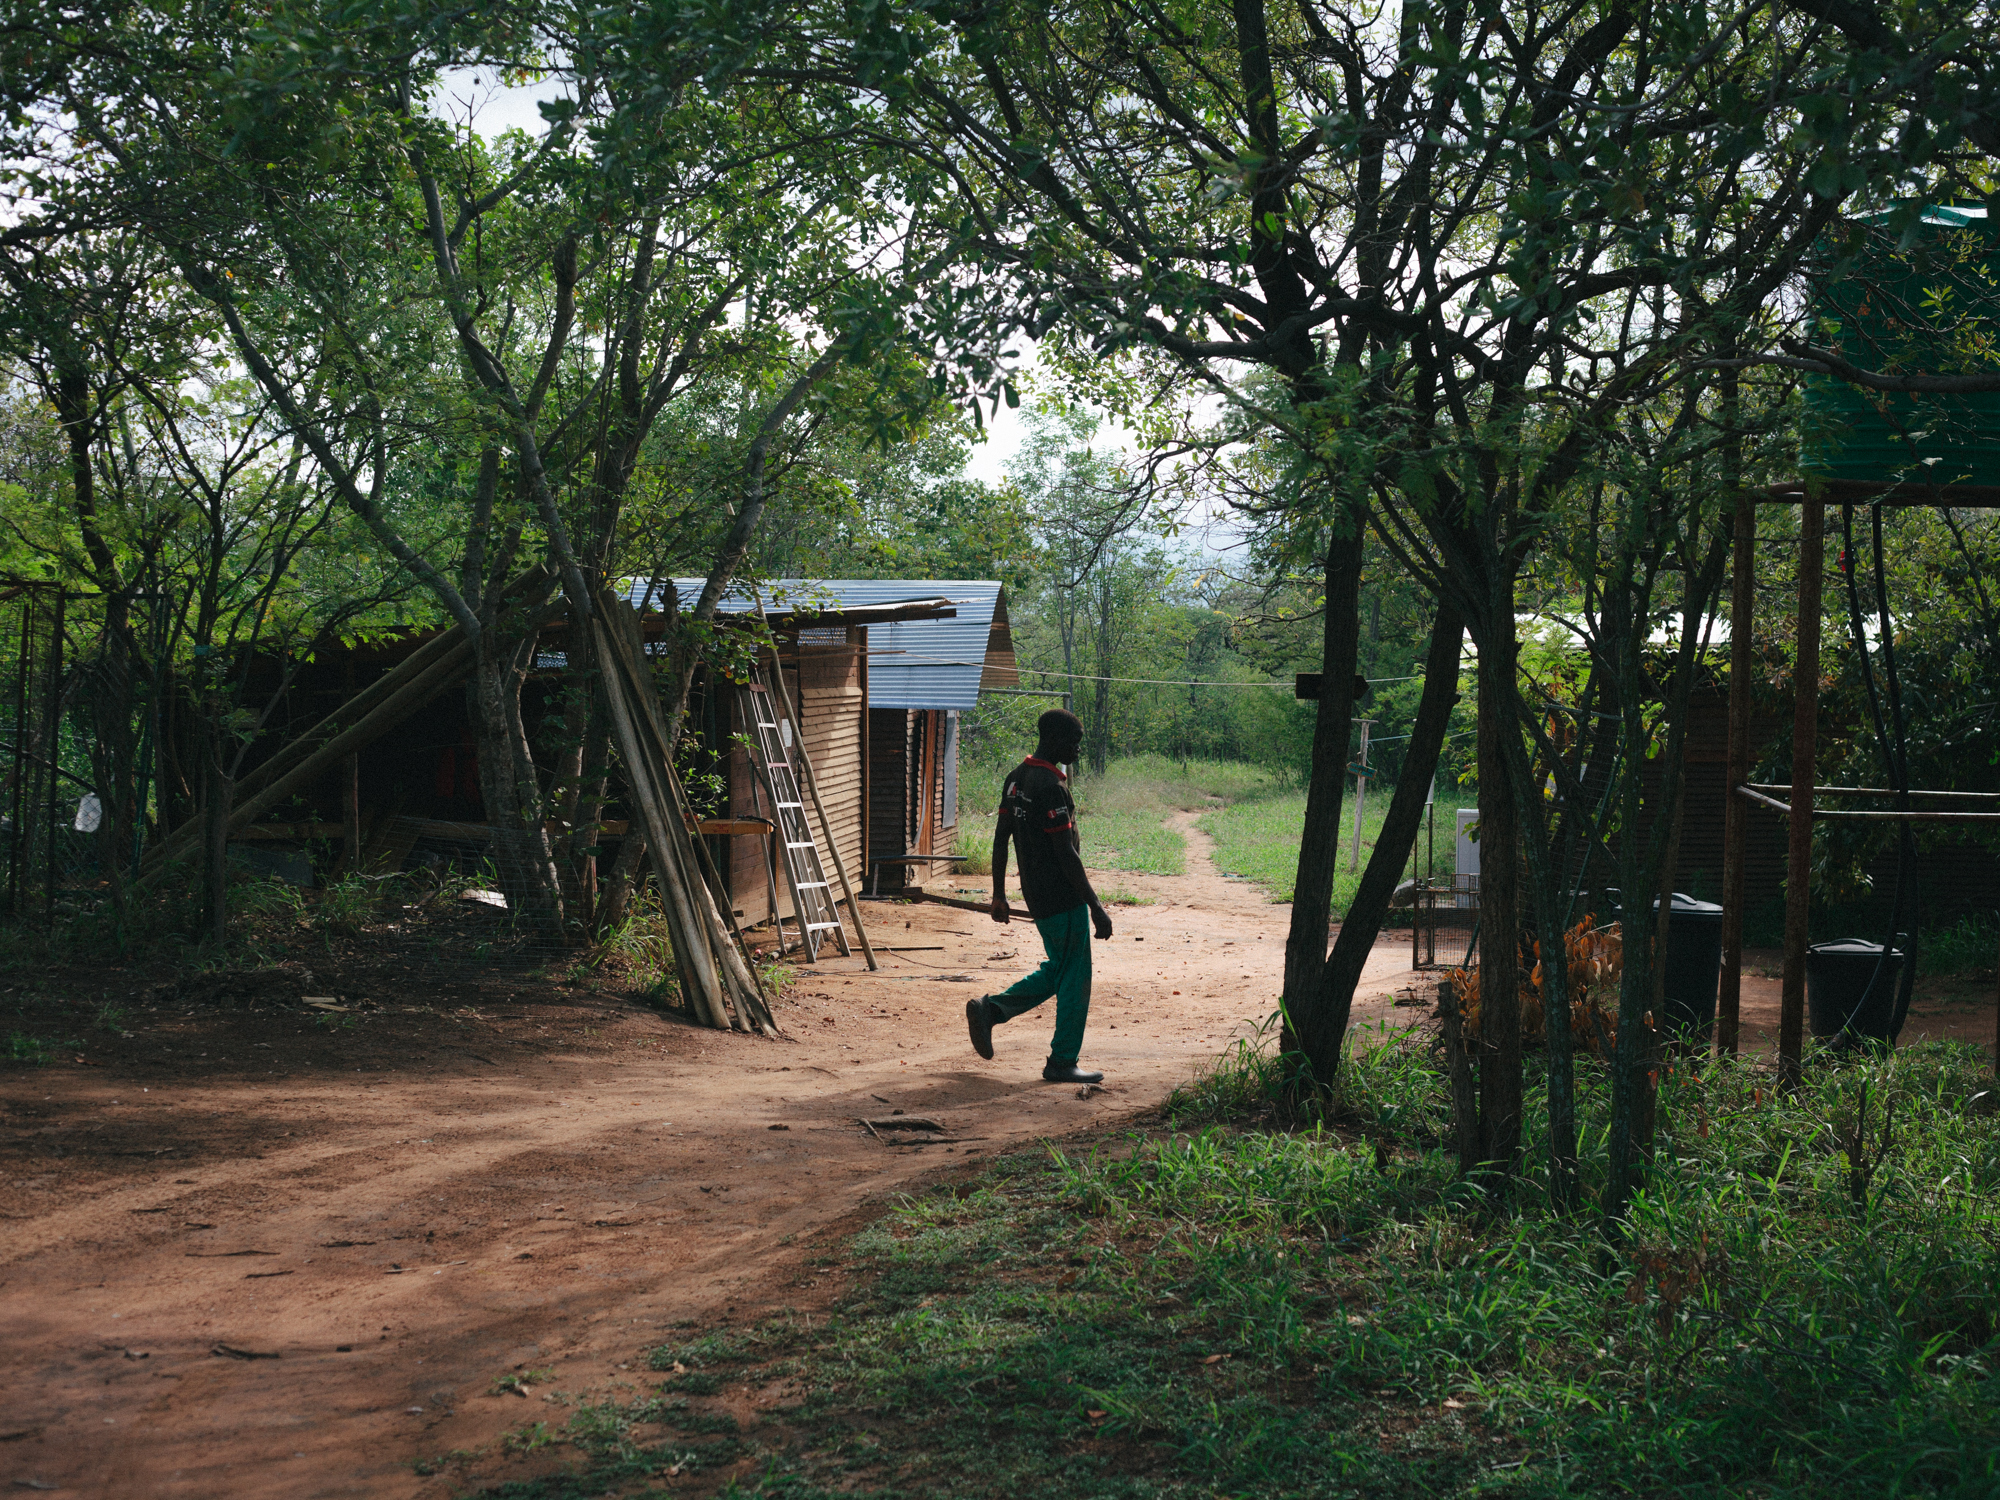 A worker heads toward the baby cabins